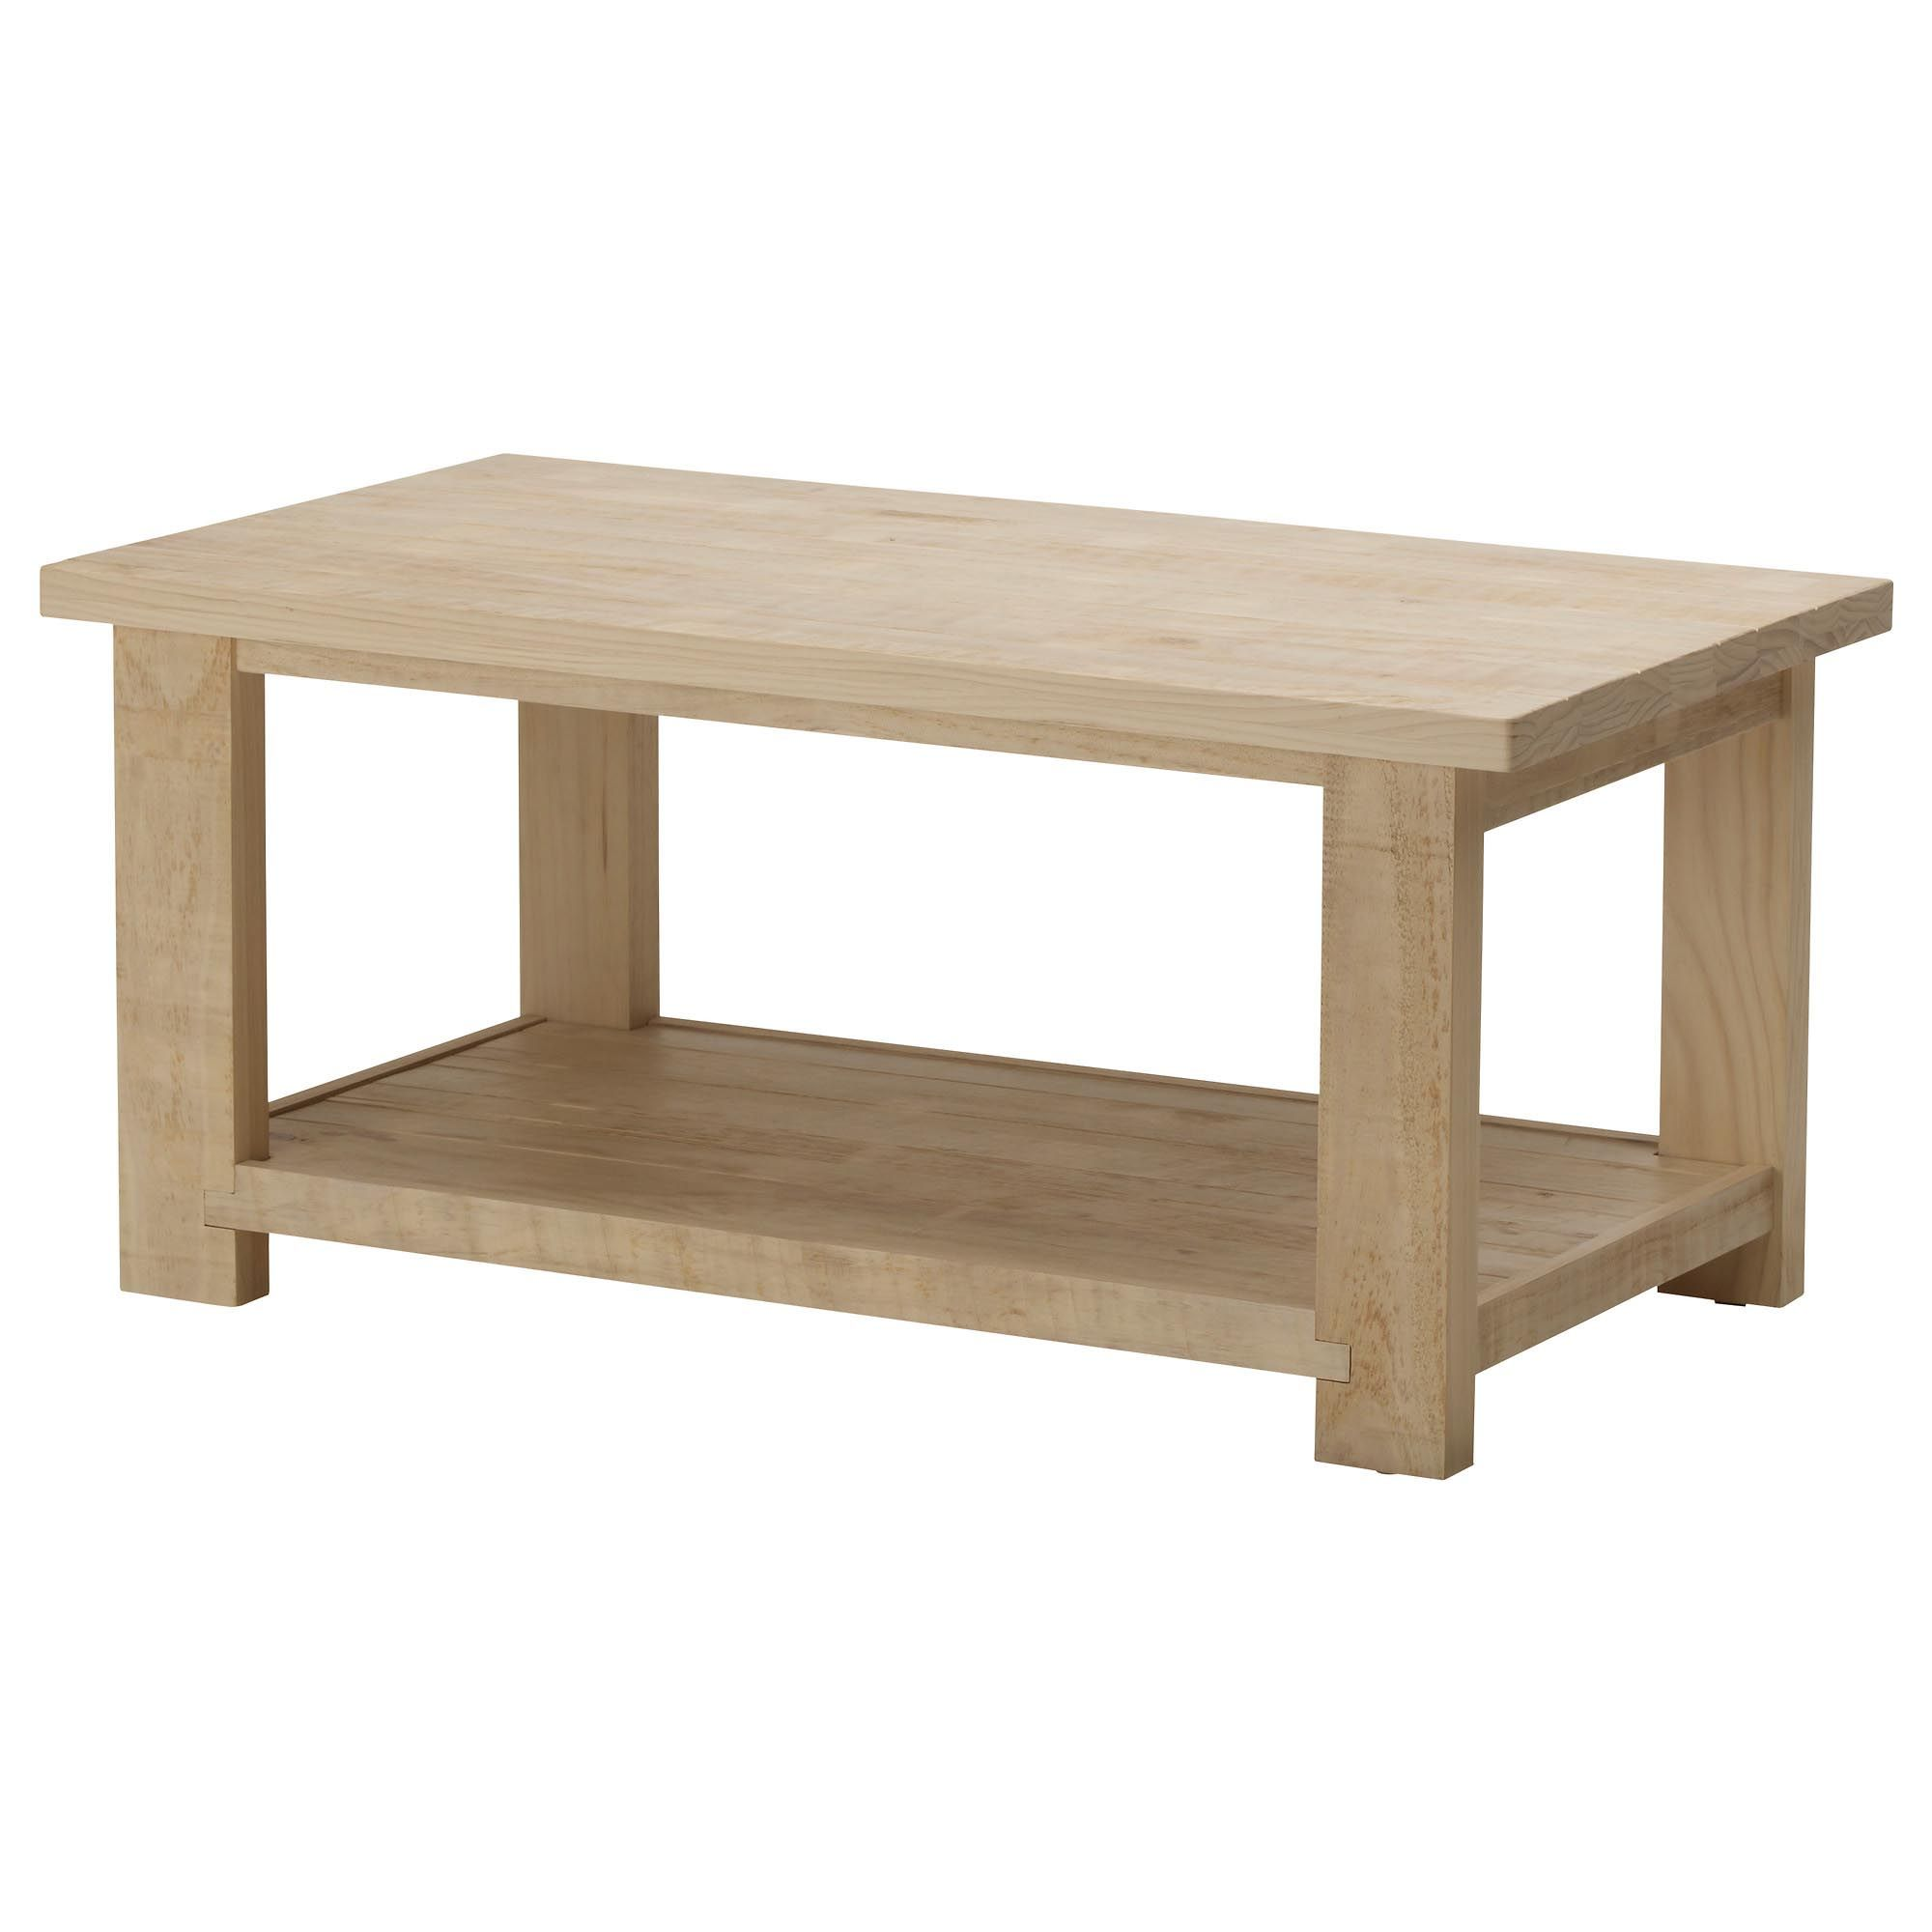 Pine coffee table ikea coffee tables pinterest pine coffee pine coffee table ikea geotapseo Image collections